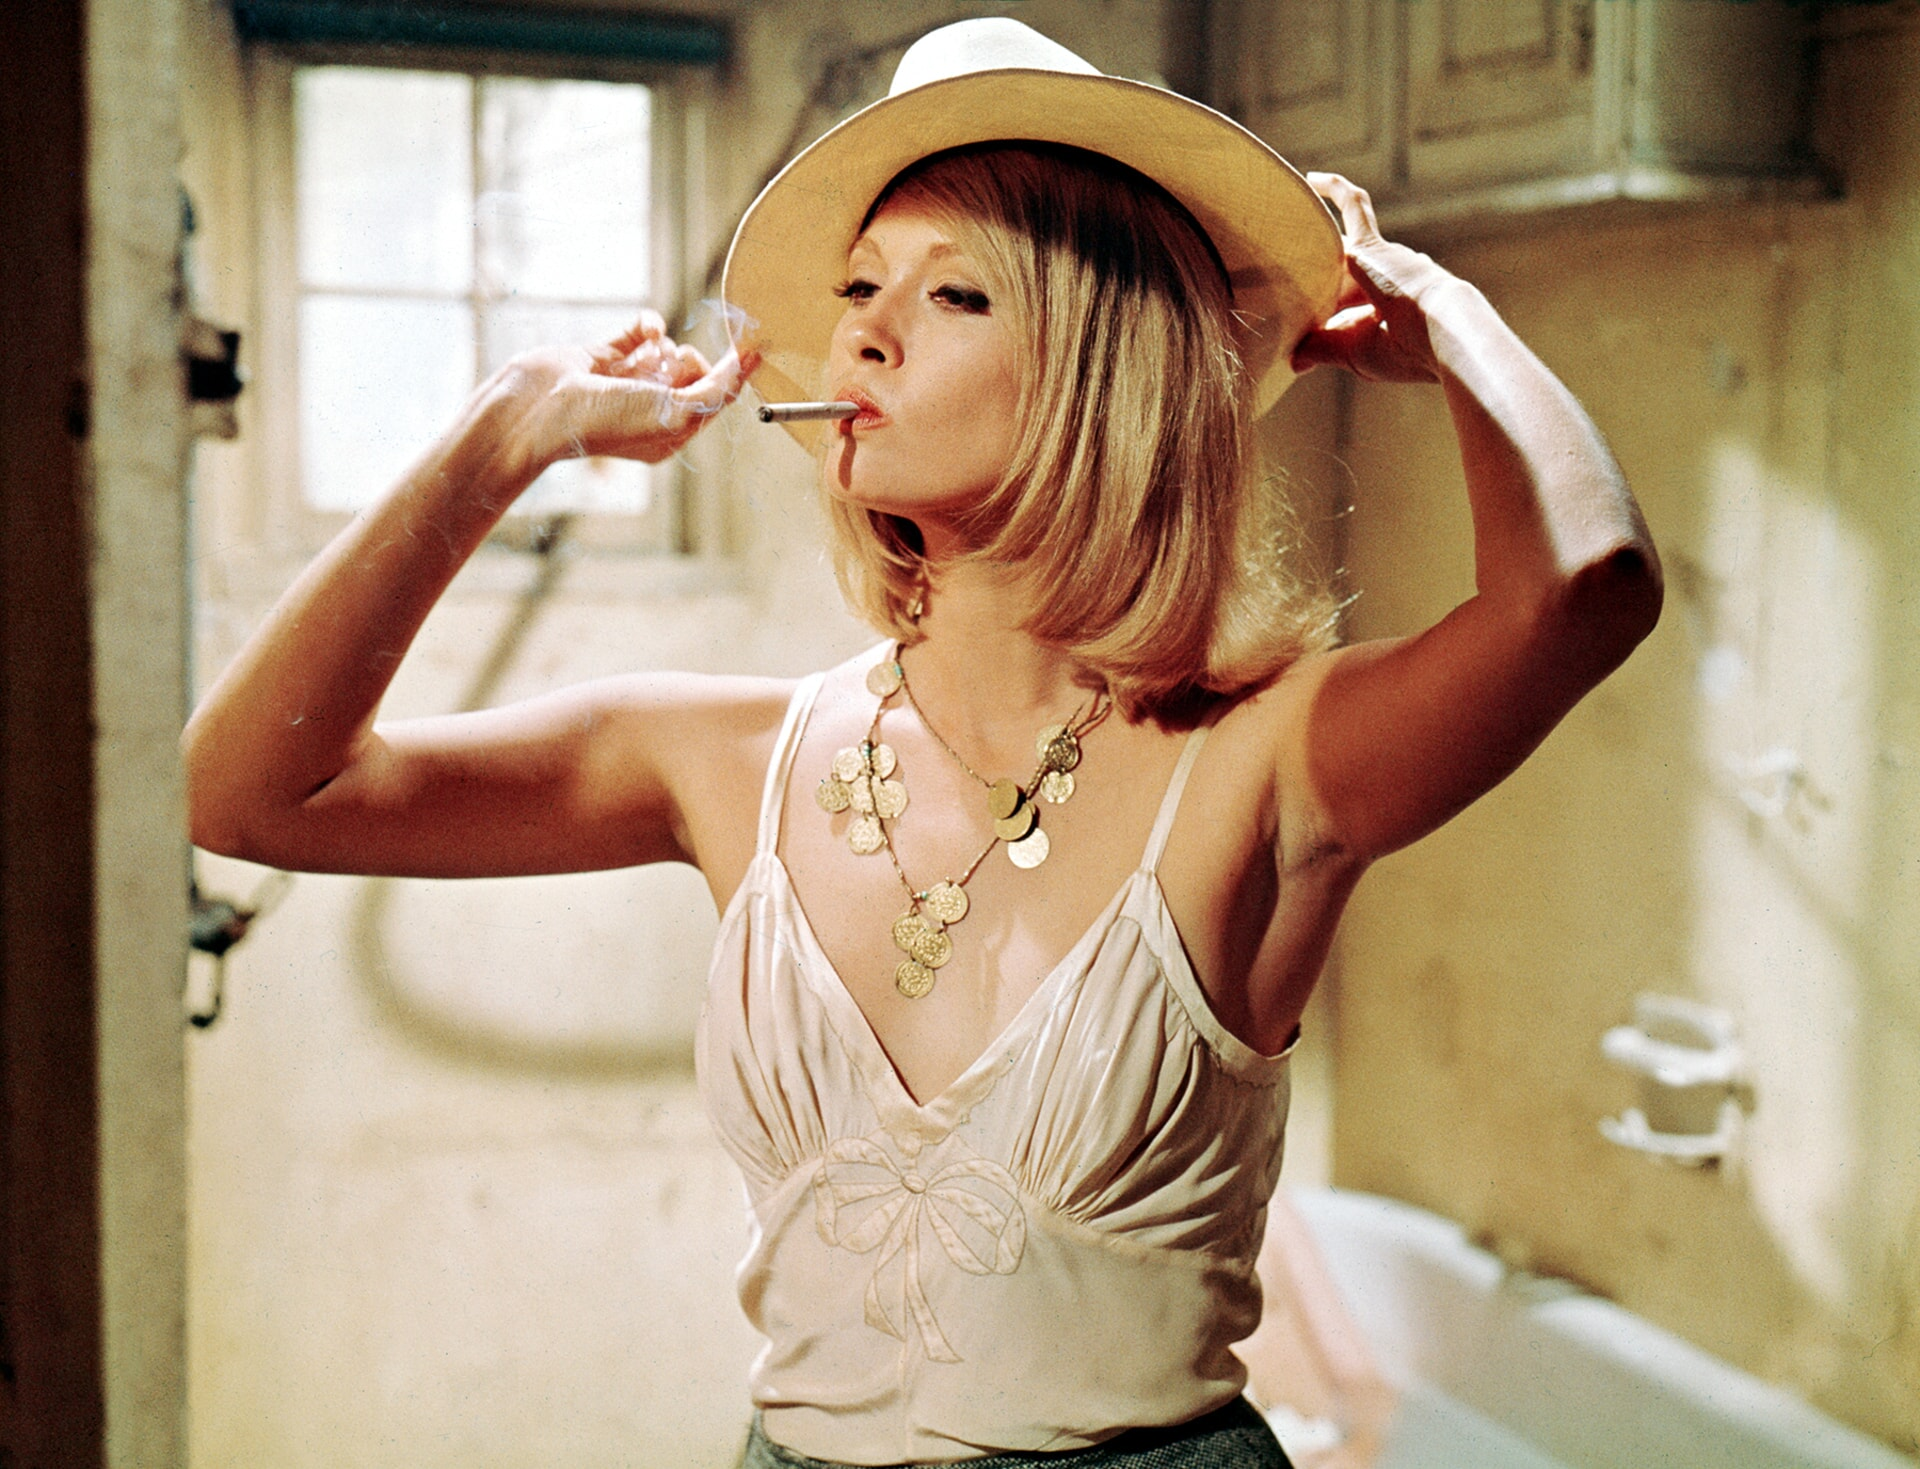 faye dunaway smoking a cigarette as bonnie parker in bonnie and clyde